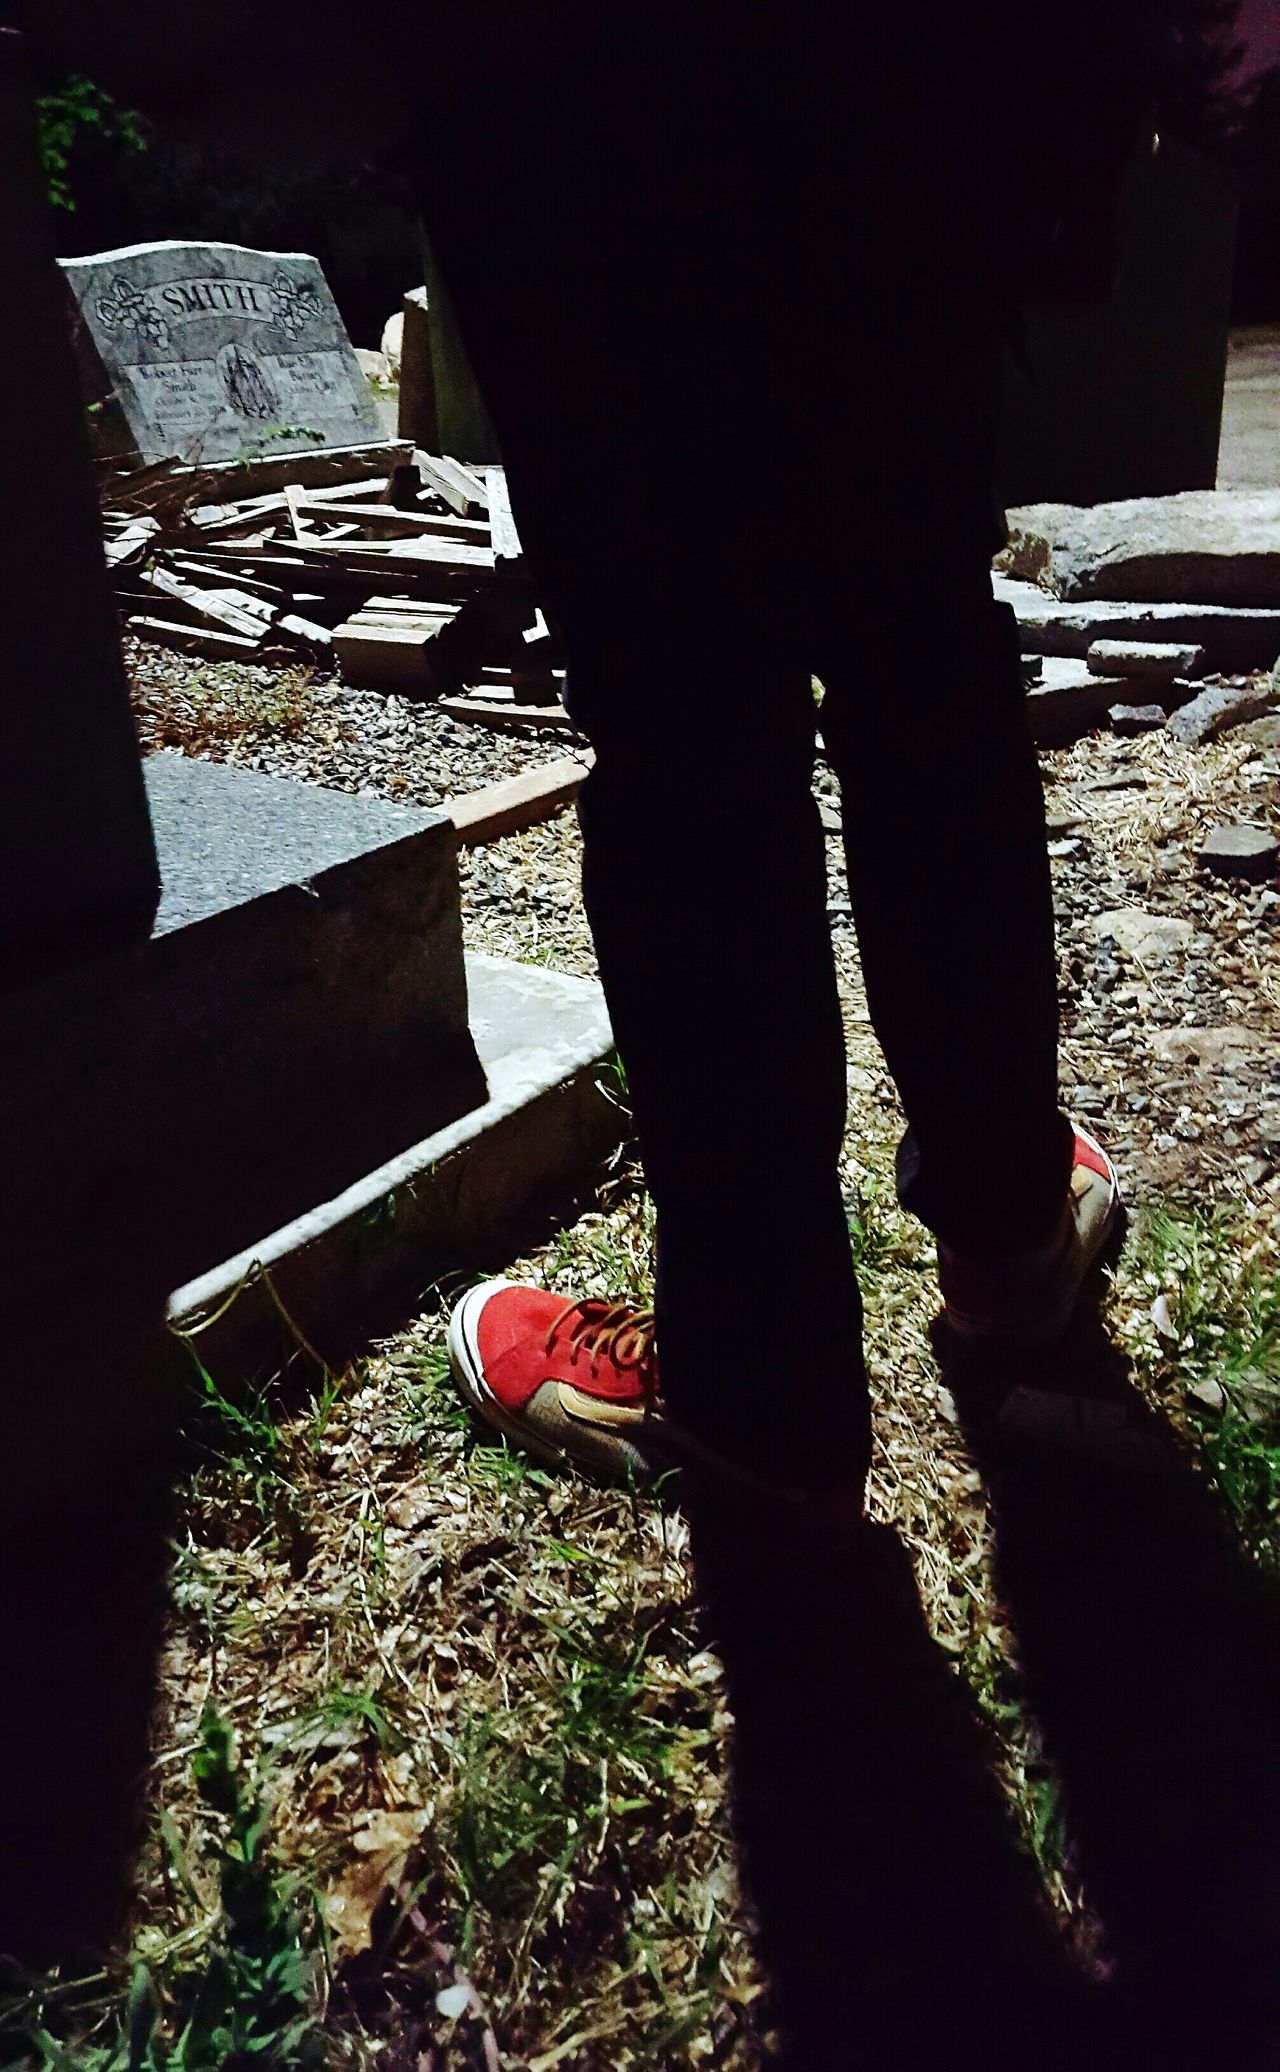 Hanging Out Taking Photos Hello World Shroomin' Streetphotography Redshoes Sneakers Graveyard Gravestone Adventures Legs Shadow